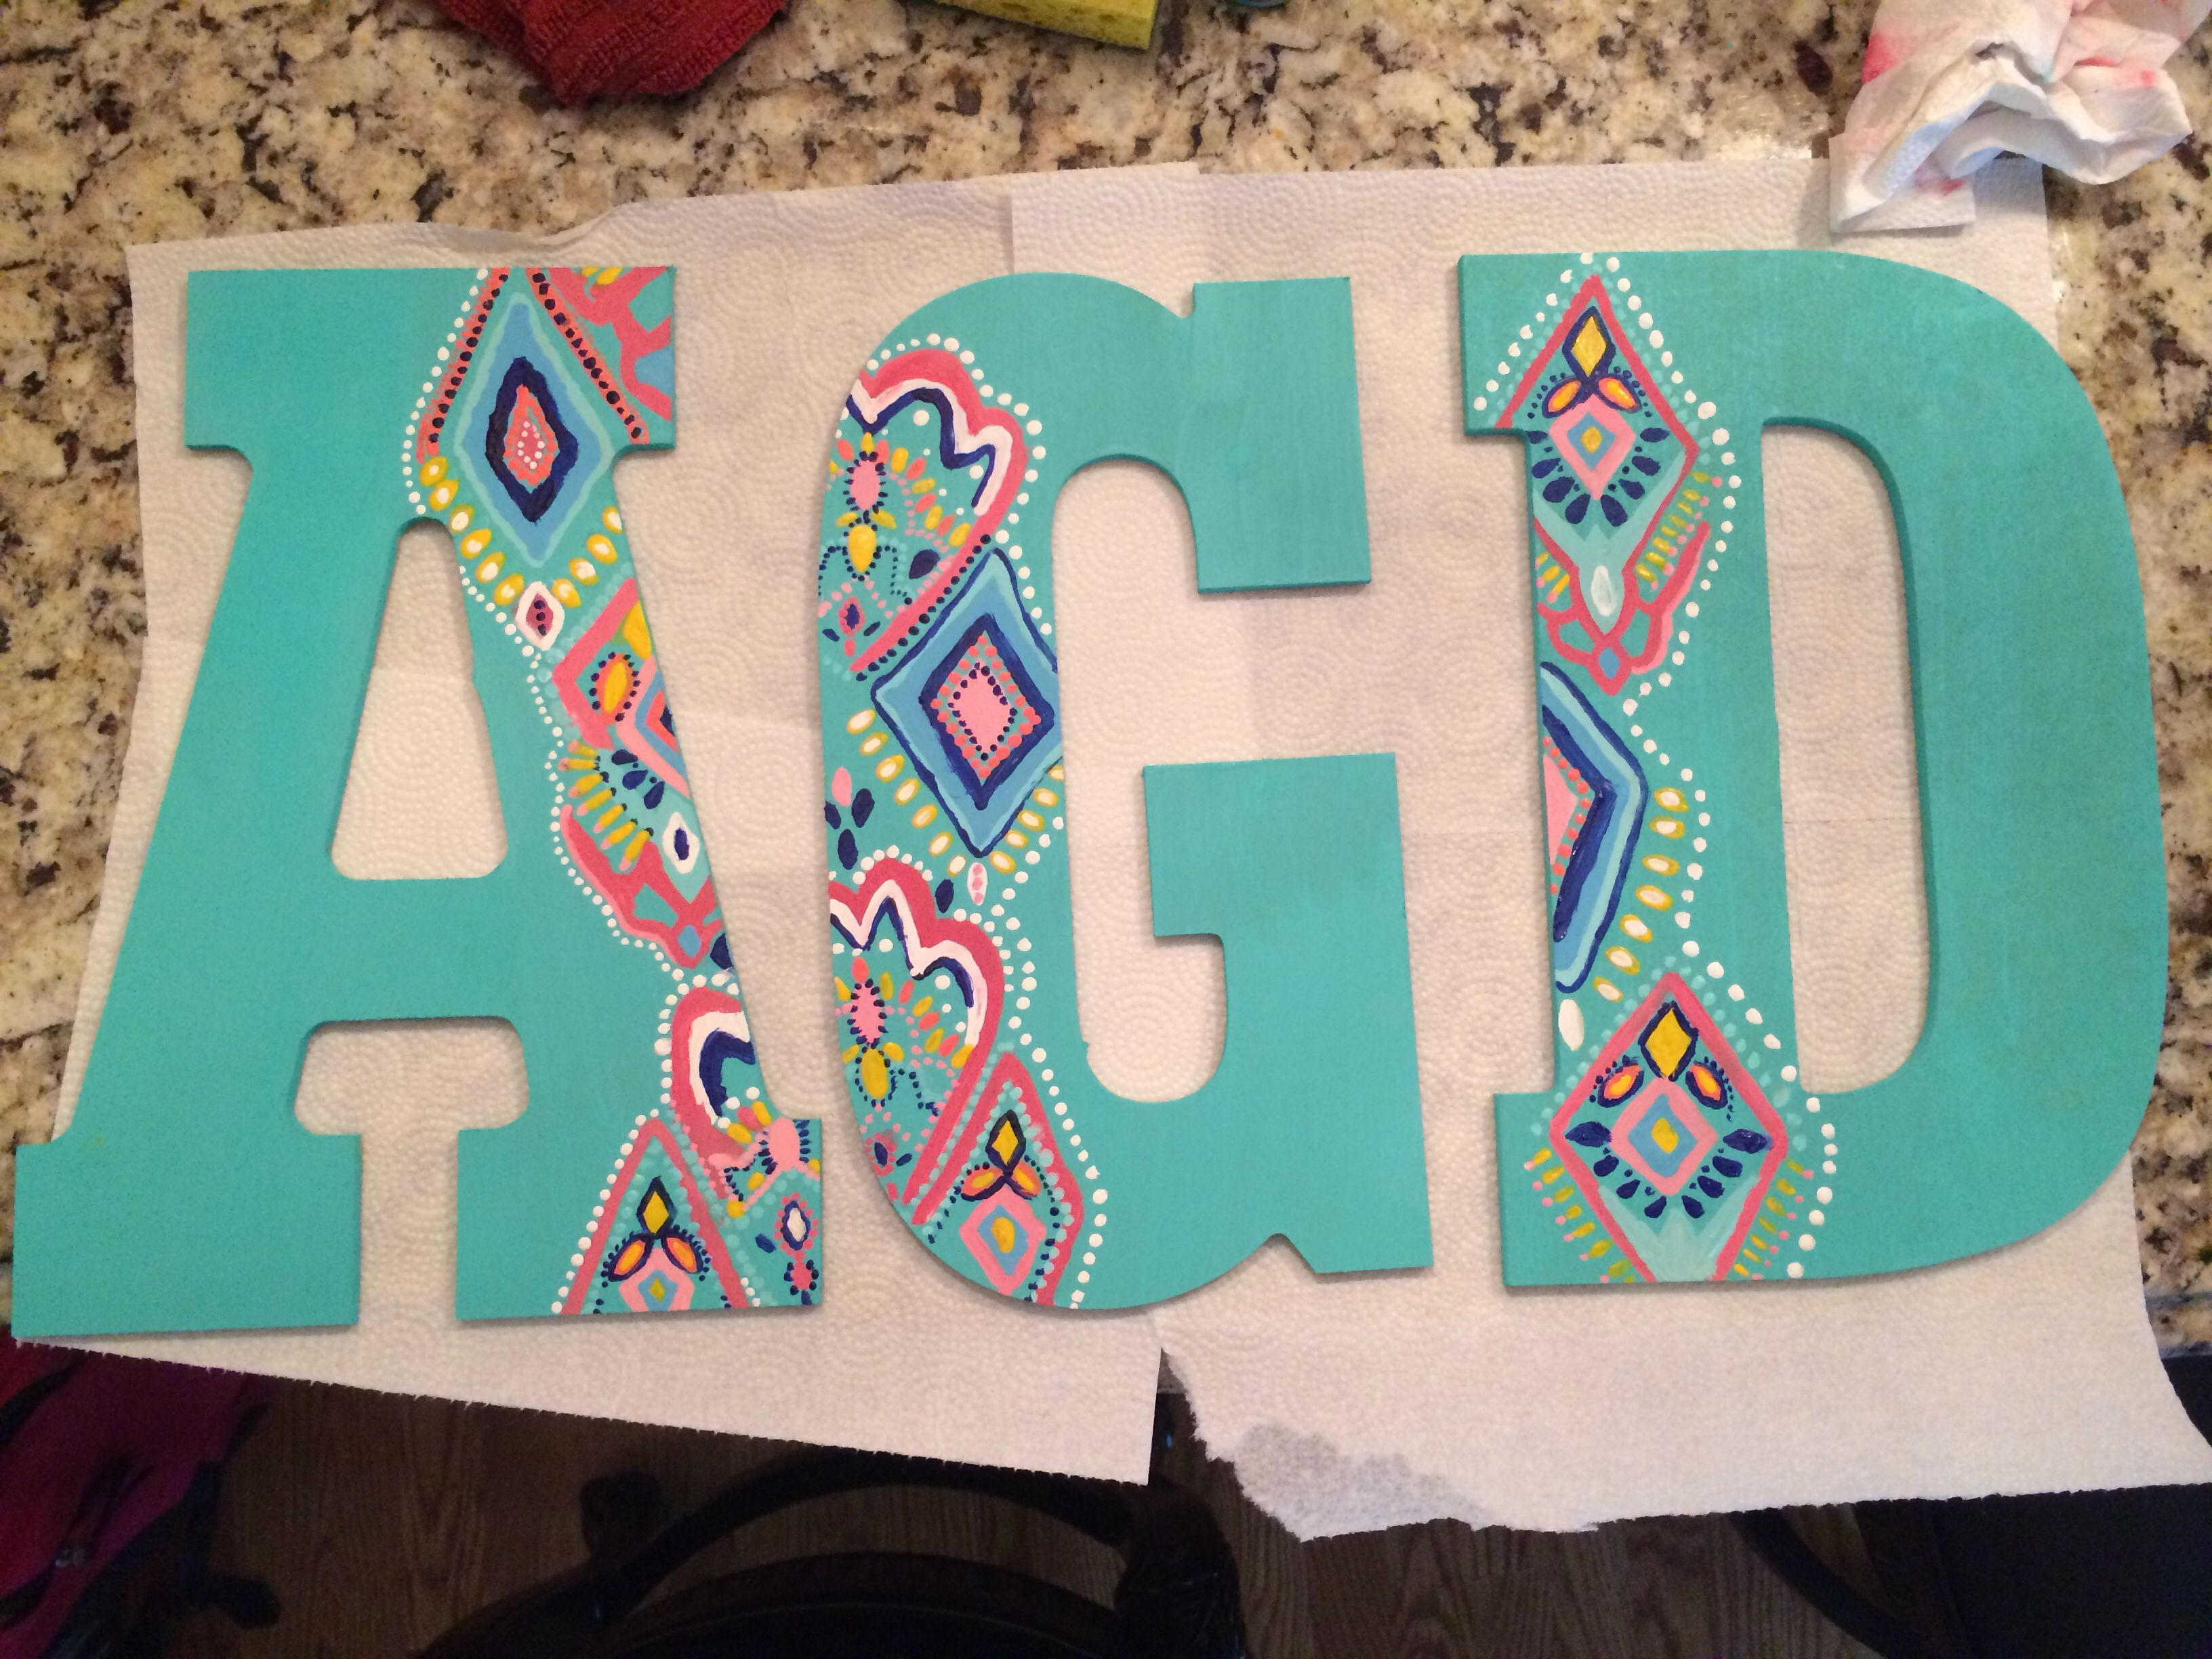 Alpha gamma delta decorated letters aye gee dee for Decoration 5 letters